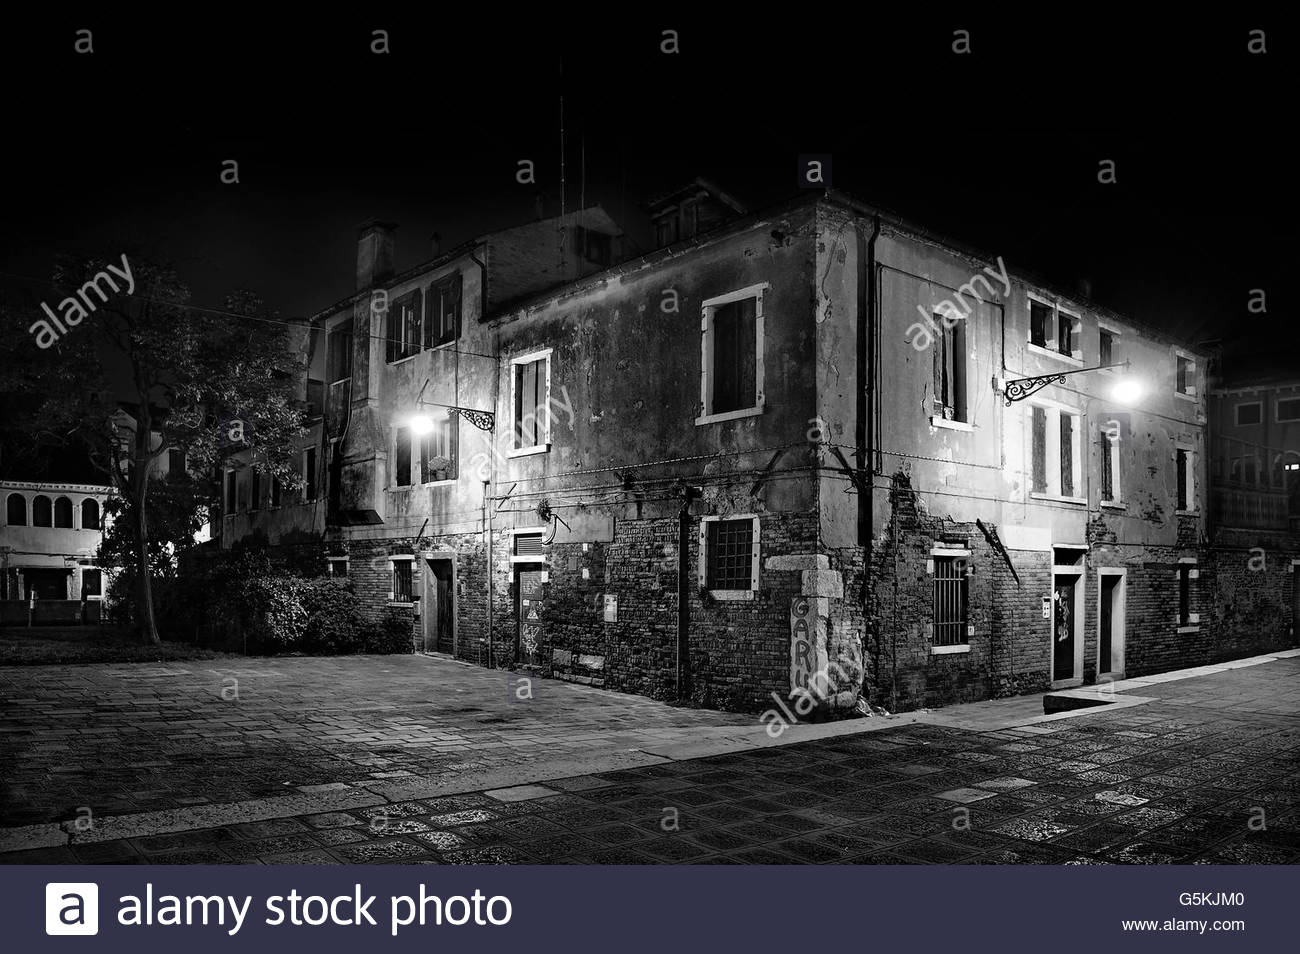 Decrepit building at night - Stock Image